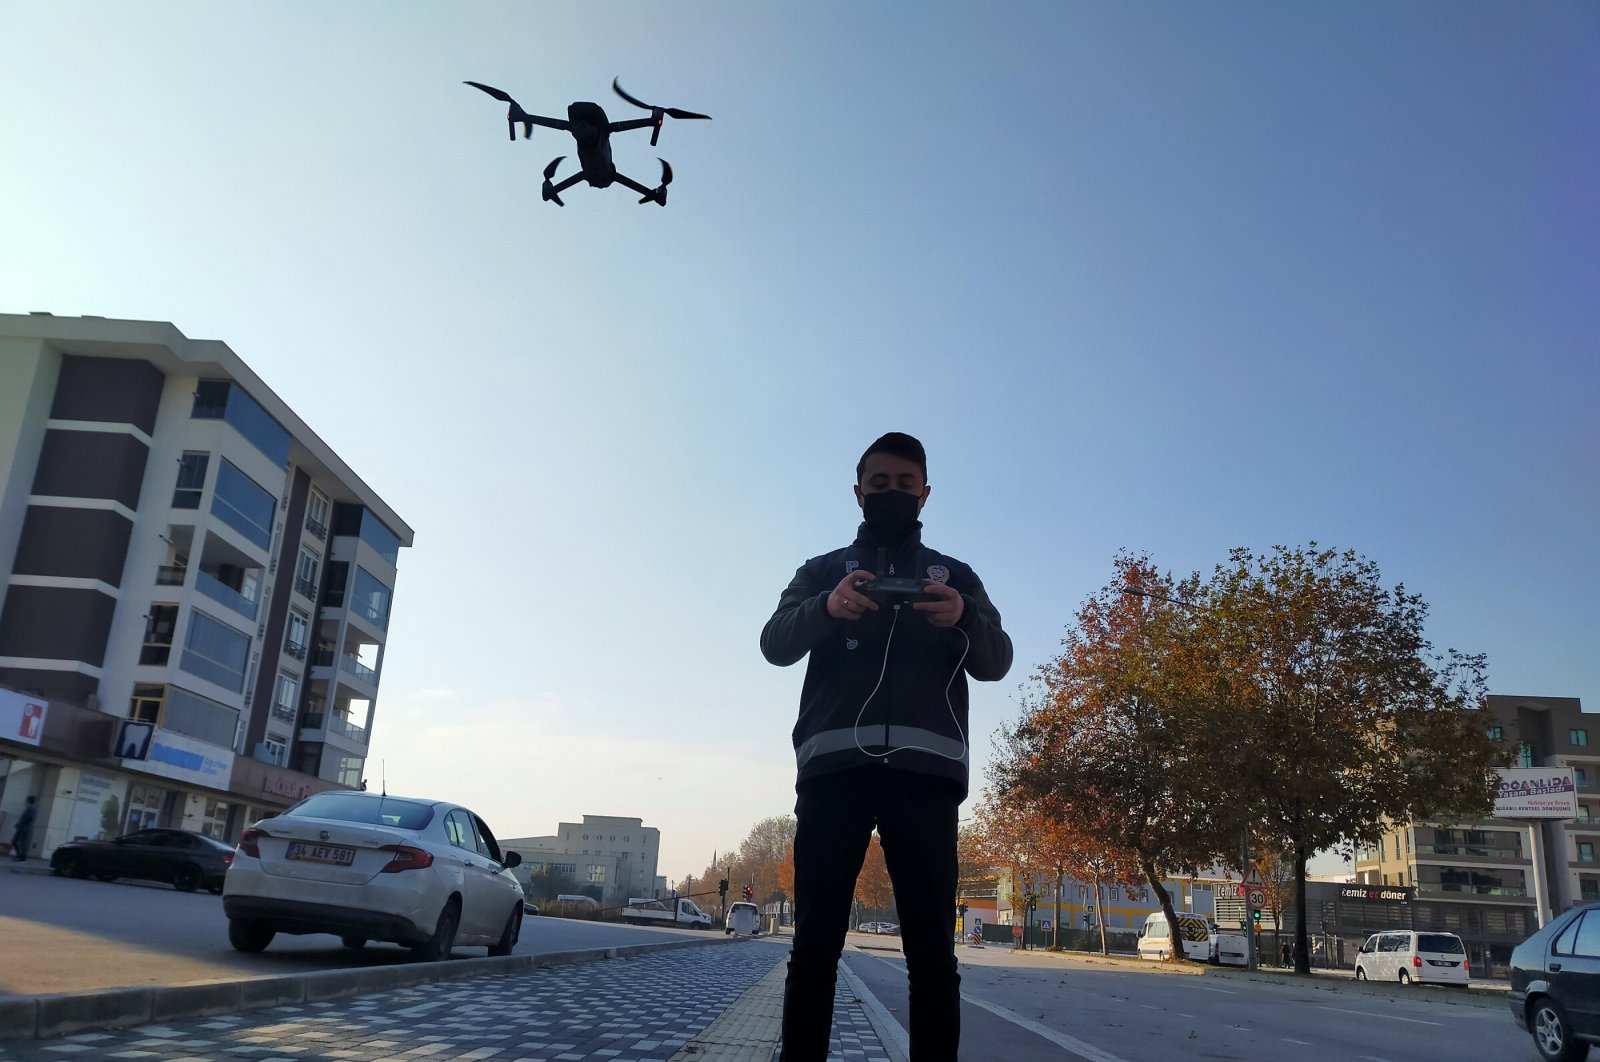 A police officer uses a drone to monitor a weekend curfew in Turkey's Bursa province on Dec. 6, 2020. (DHA Photo)